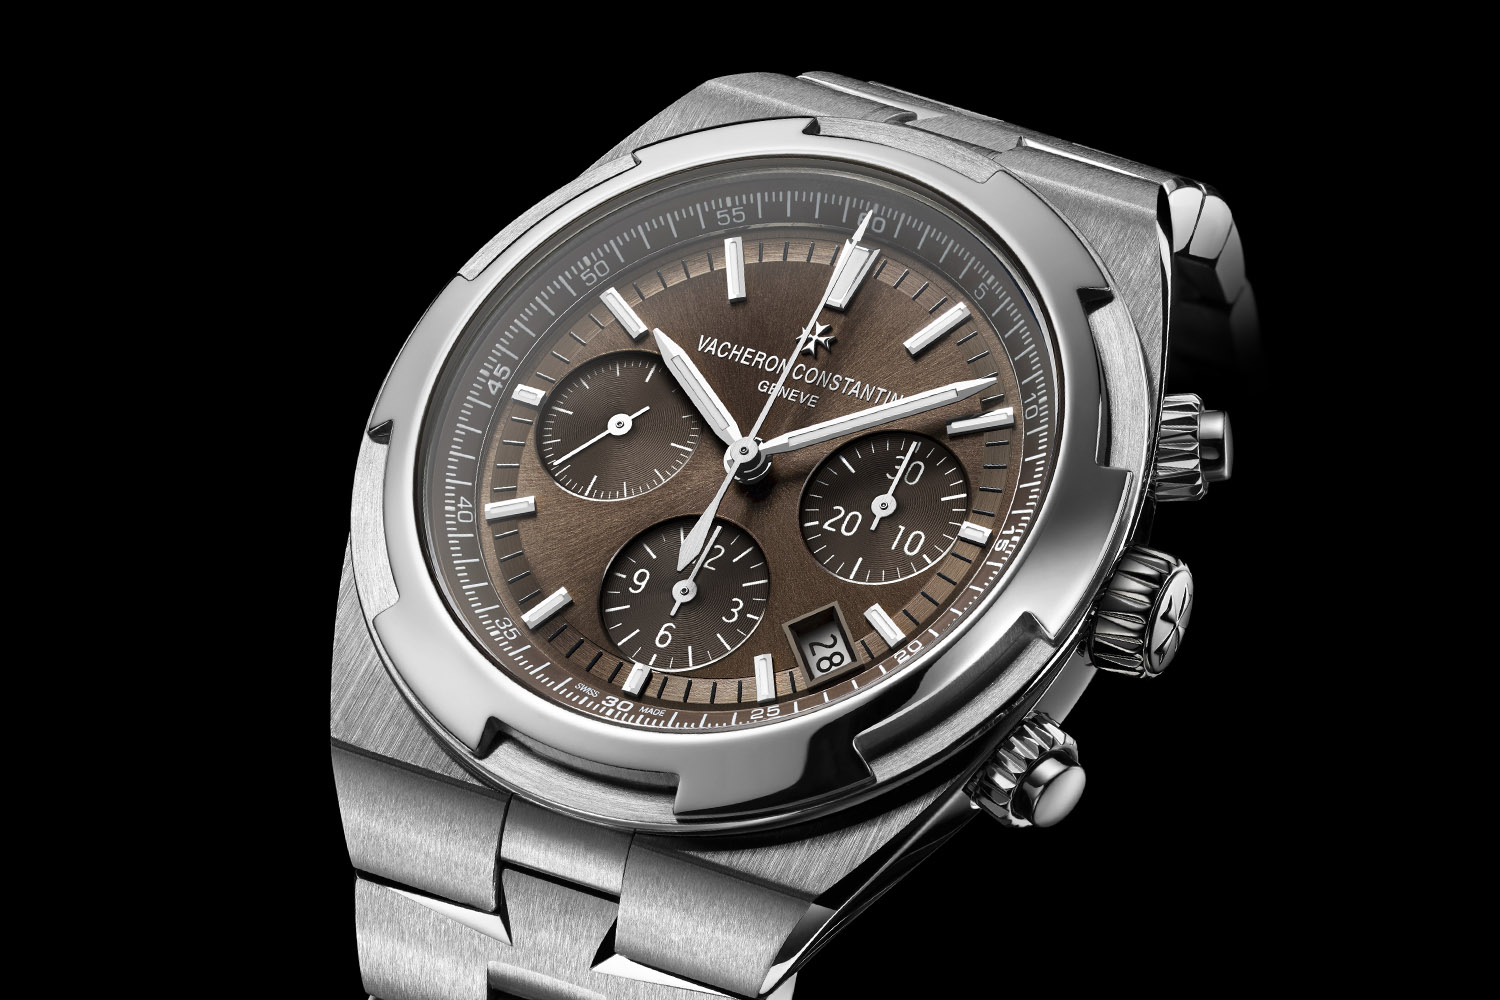 Introducing – Vacheron Constantin Overseas 4500V & Chronograph 5500V now with brown dials (inc. price)